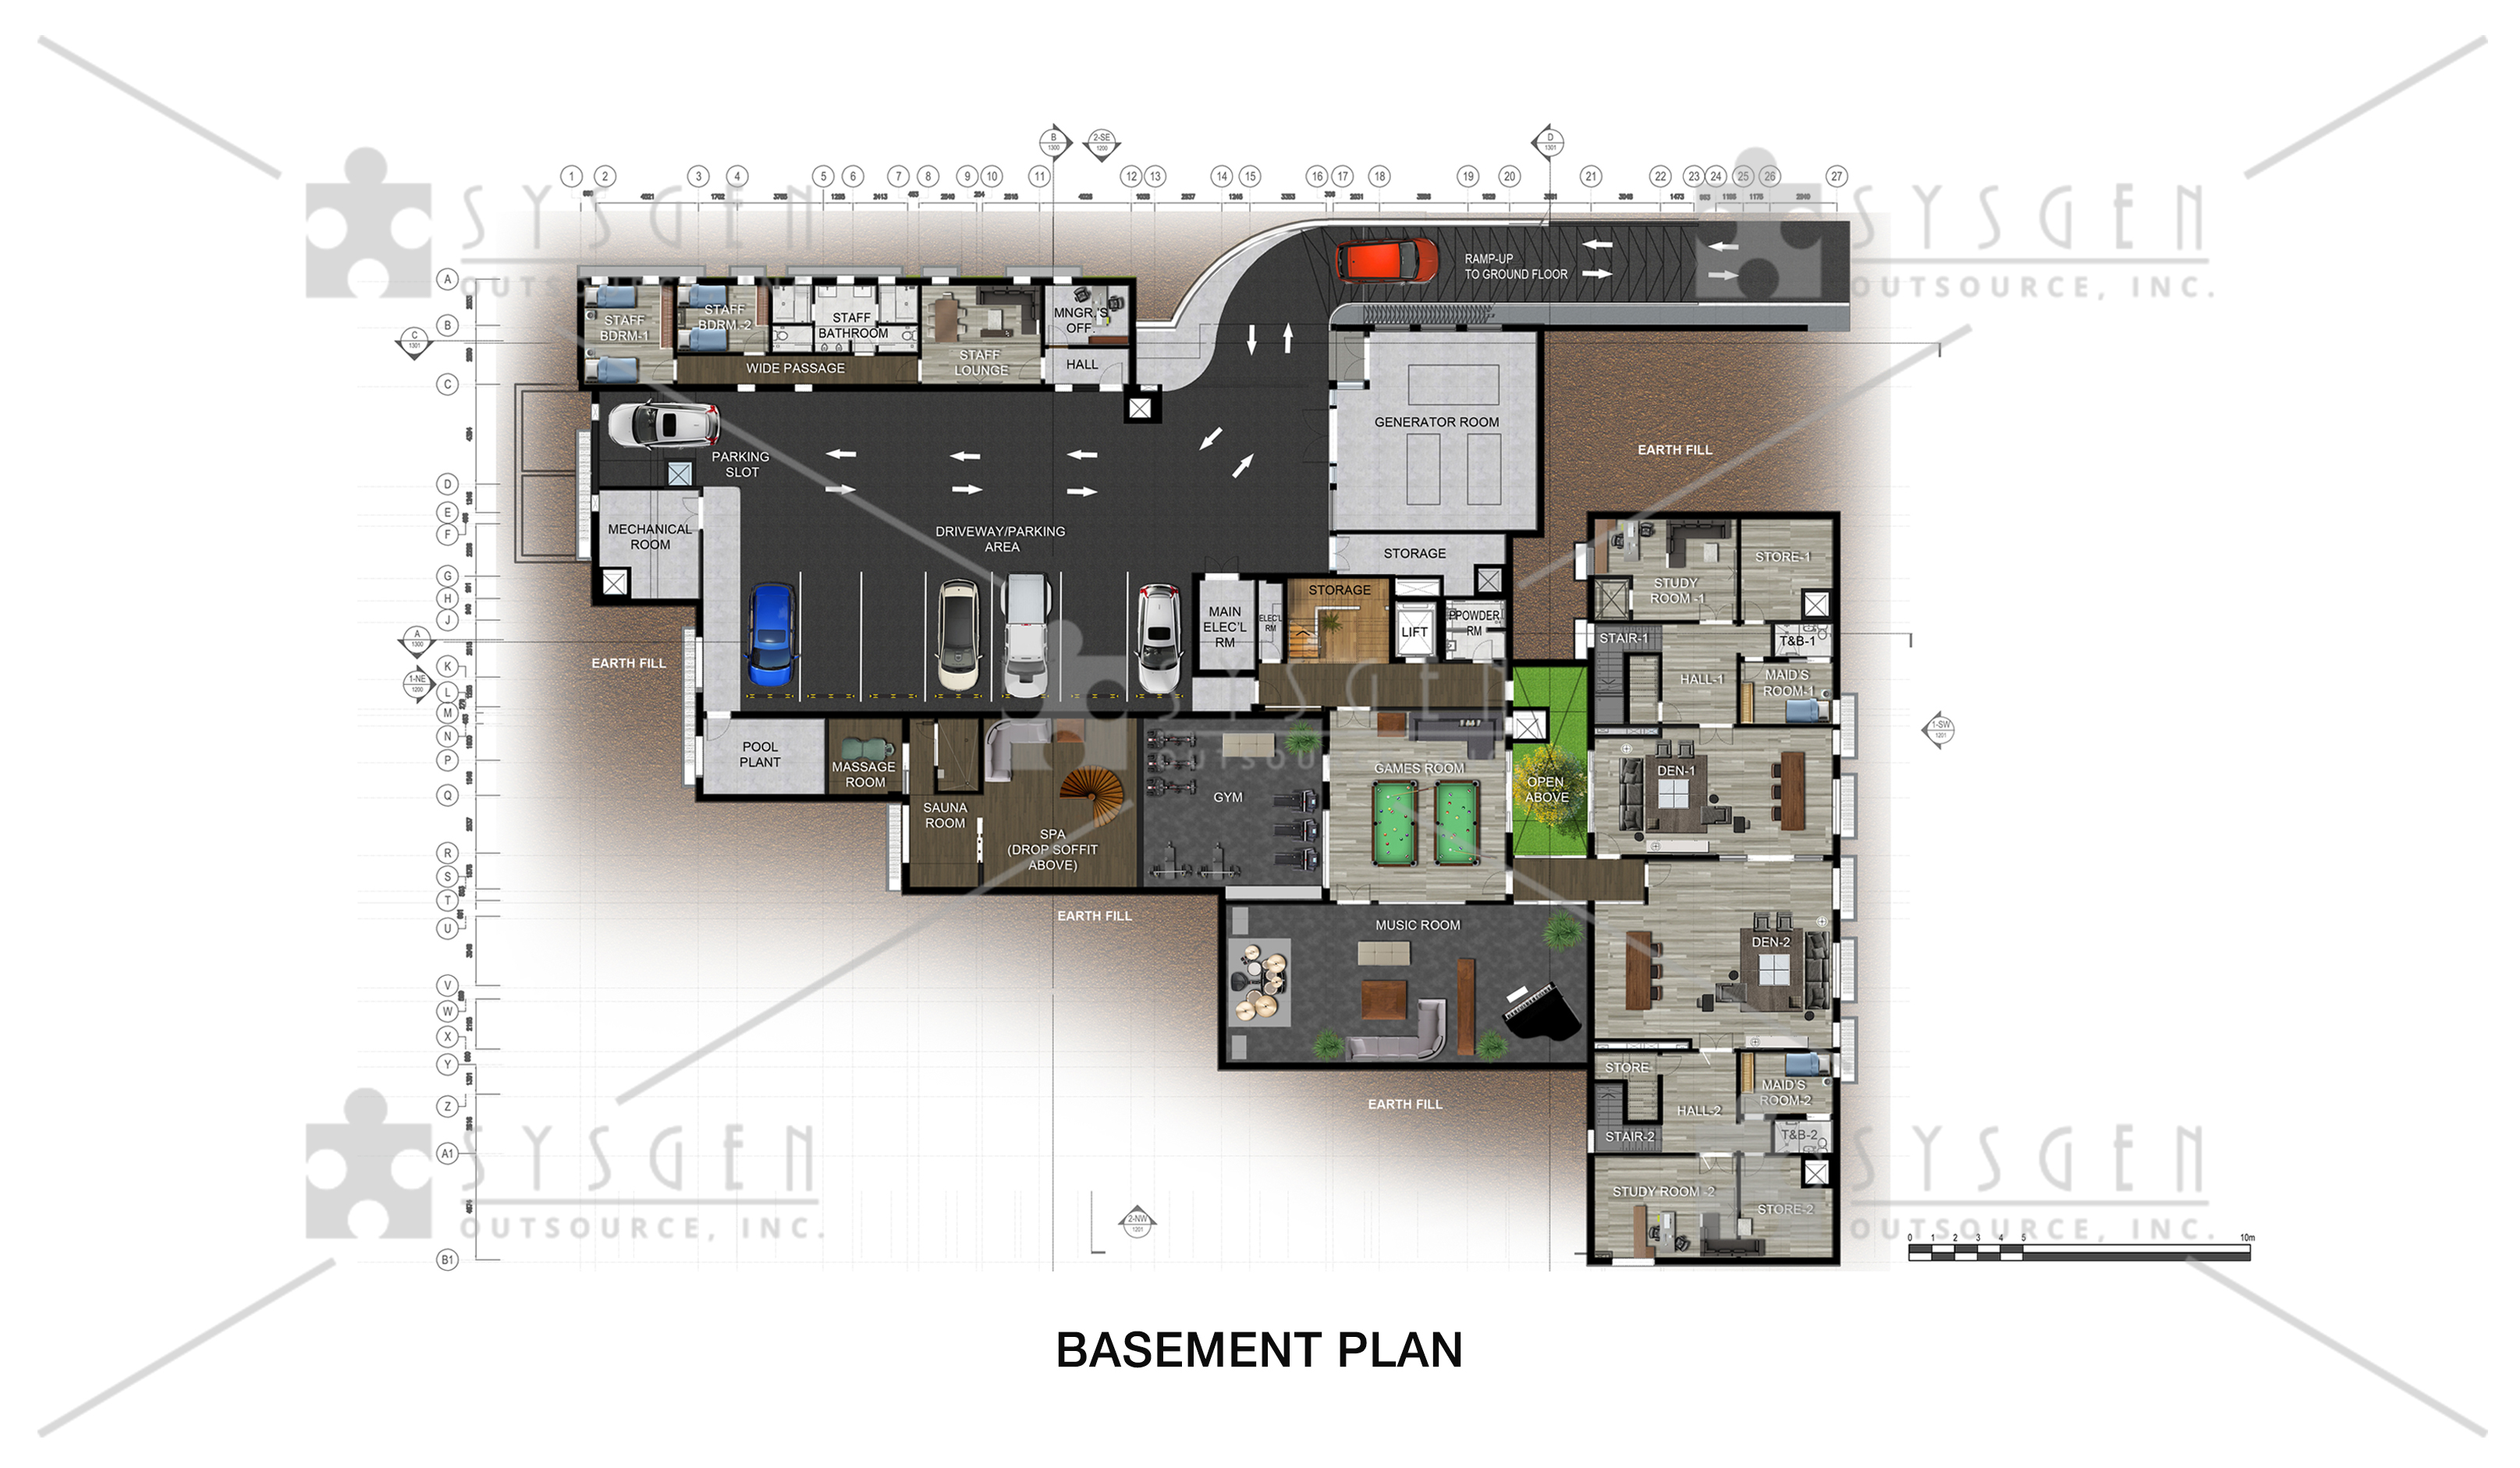 sysgen-outsource-cad-outsourcing-services-sketch-up-residential_villa-jj3